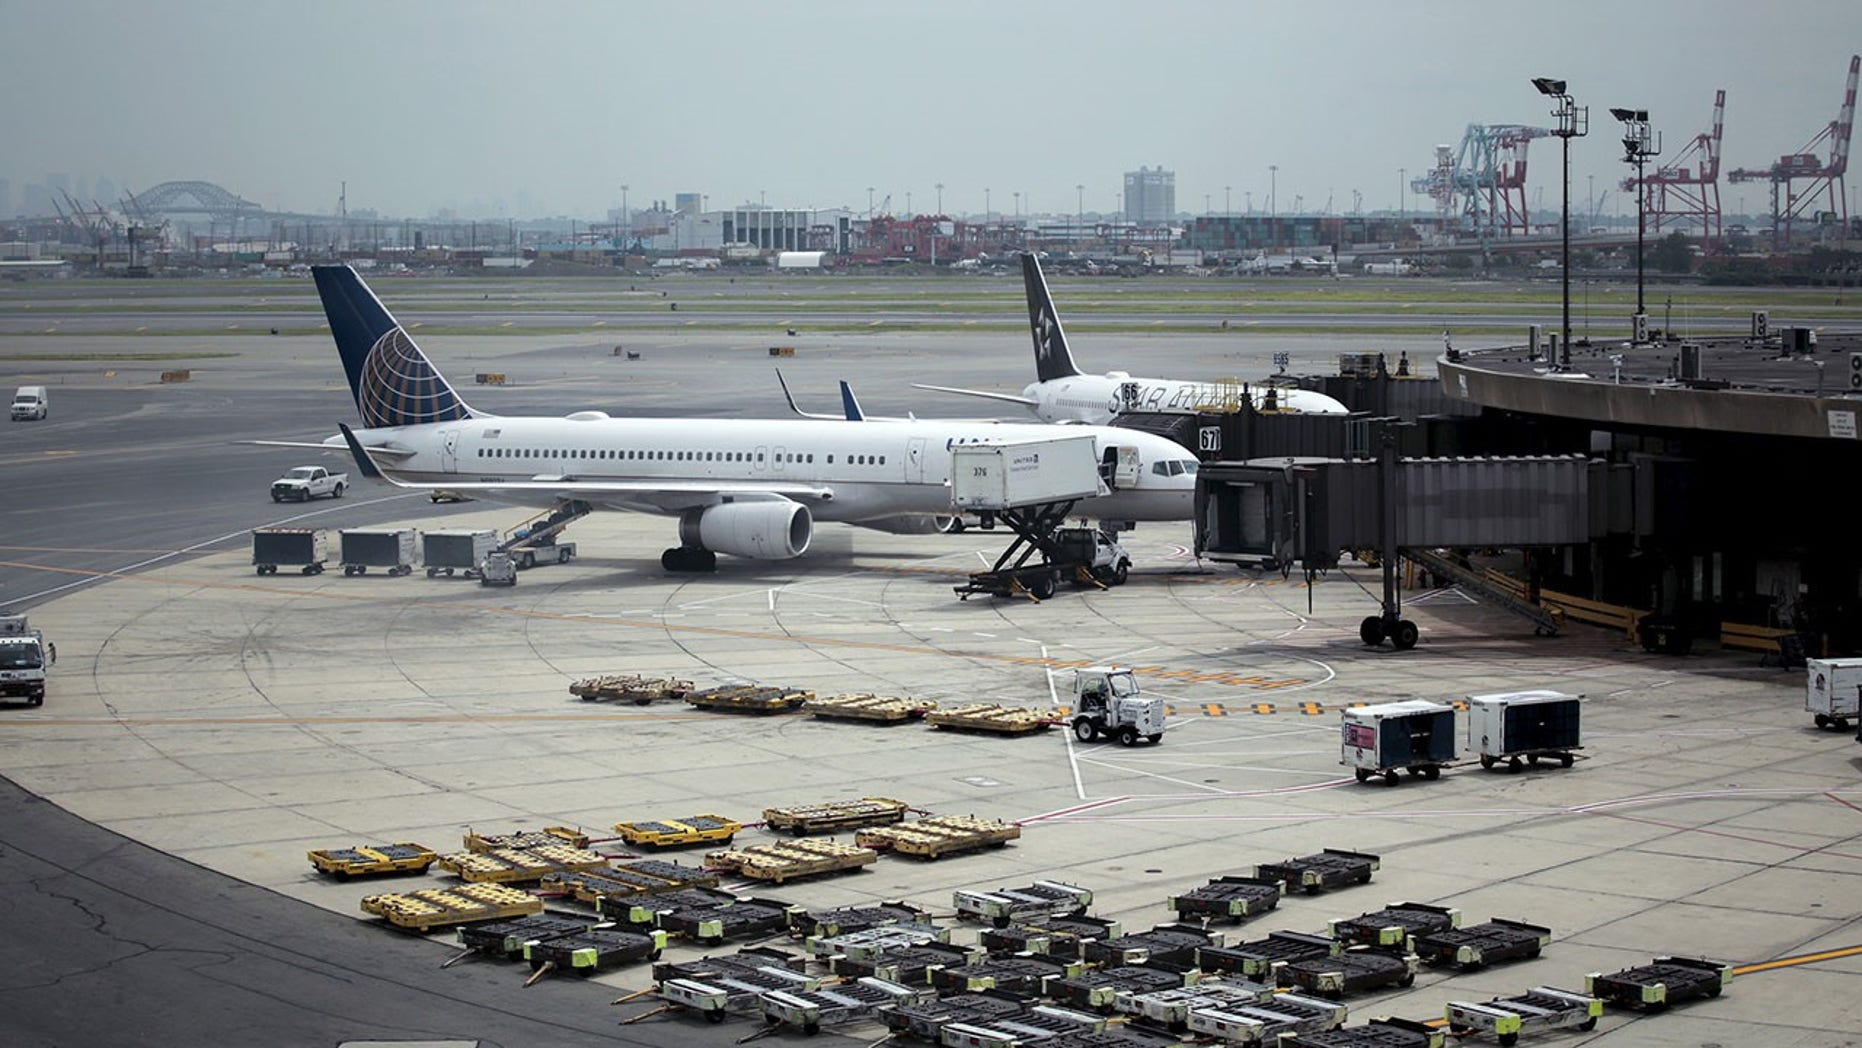 Officers working out of Newark Liberty International Airport have been arrested for hazing.